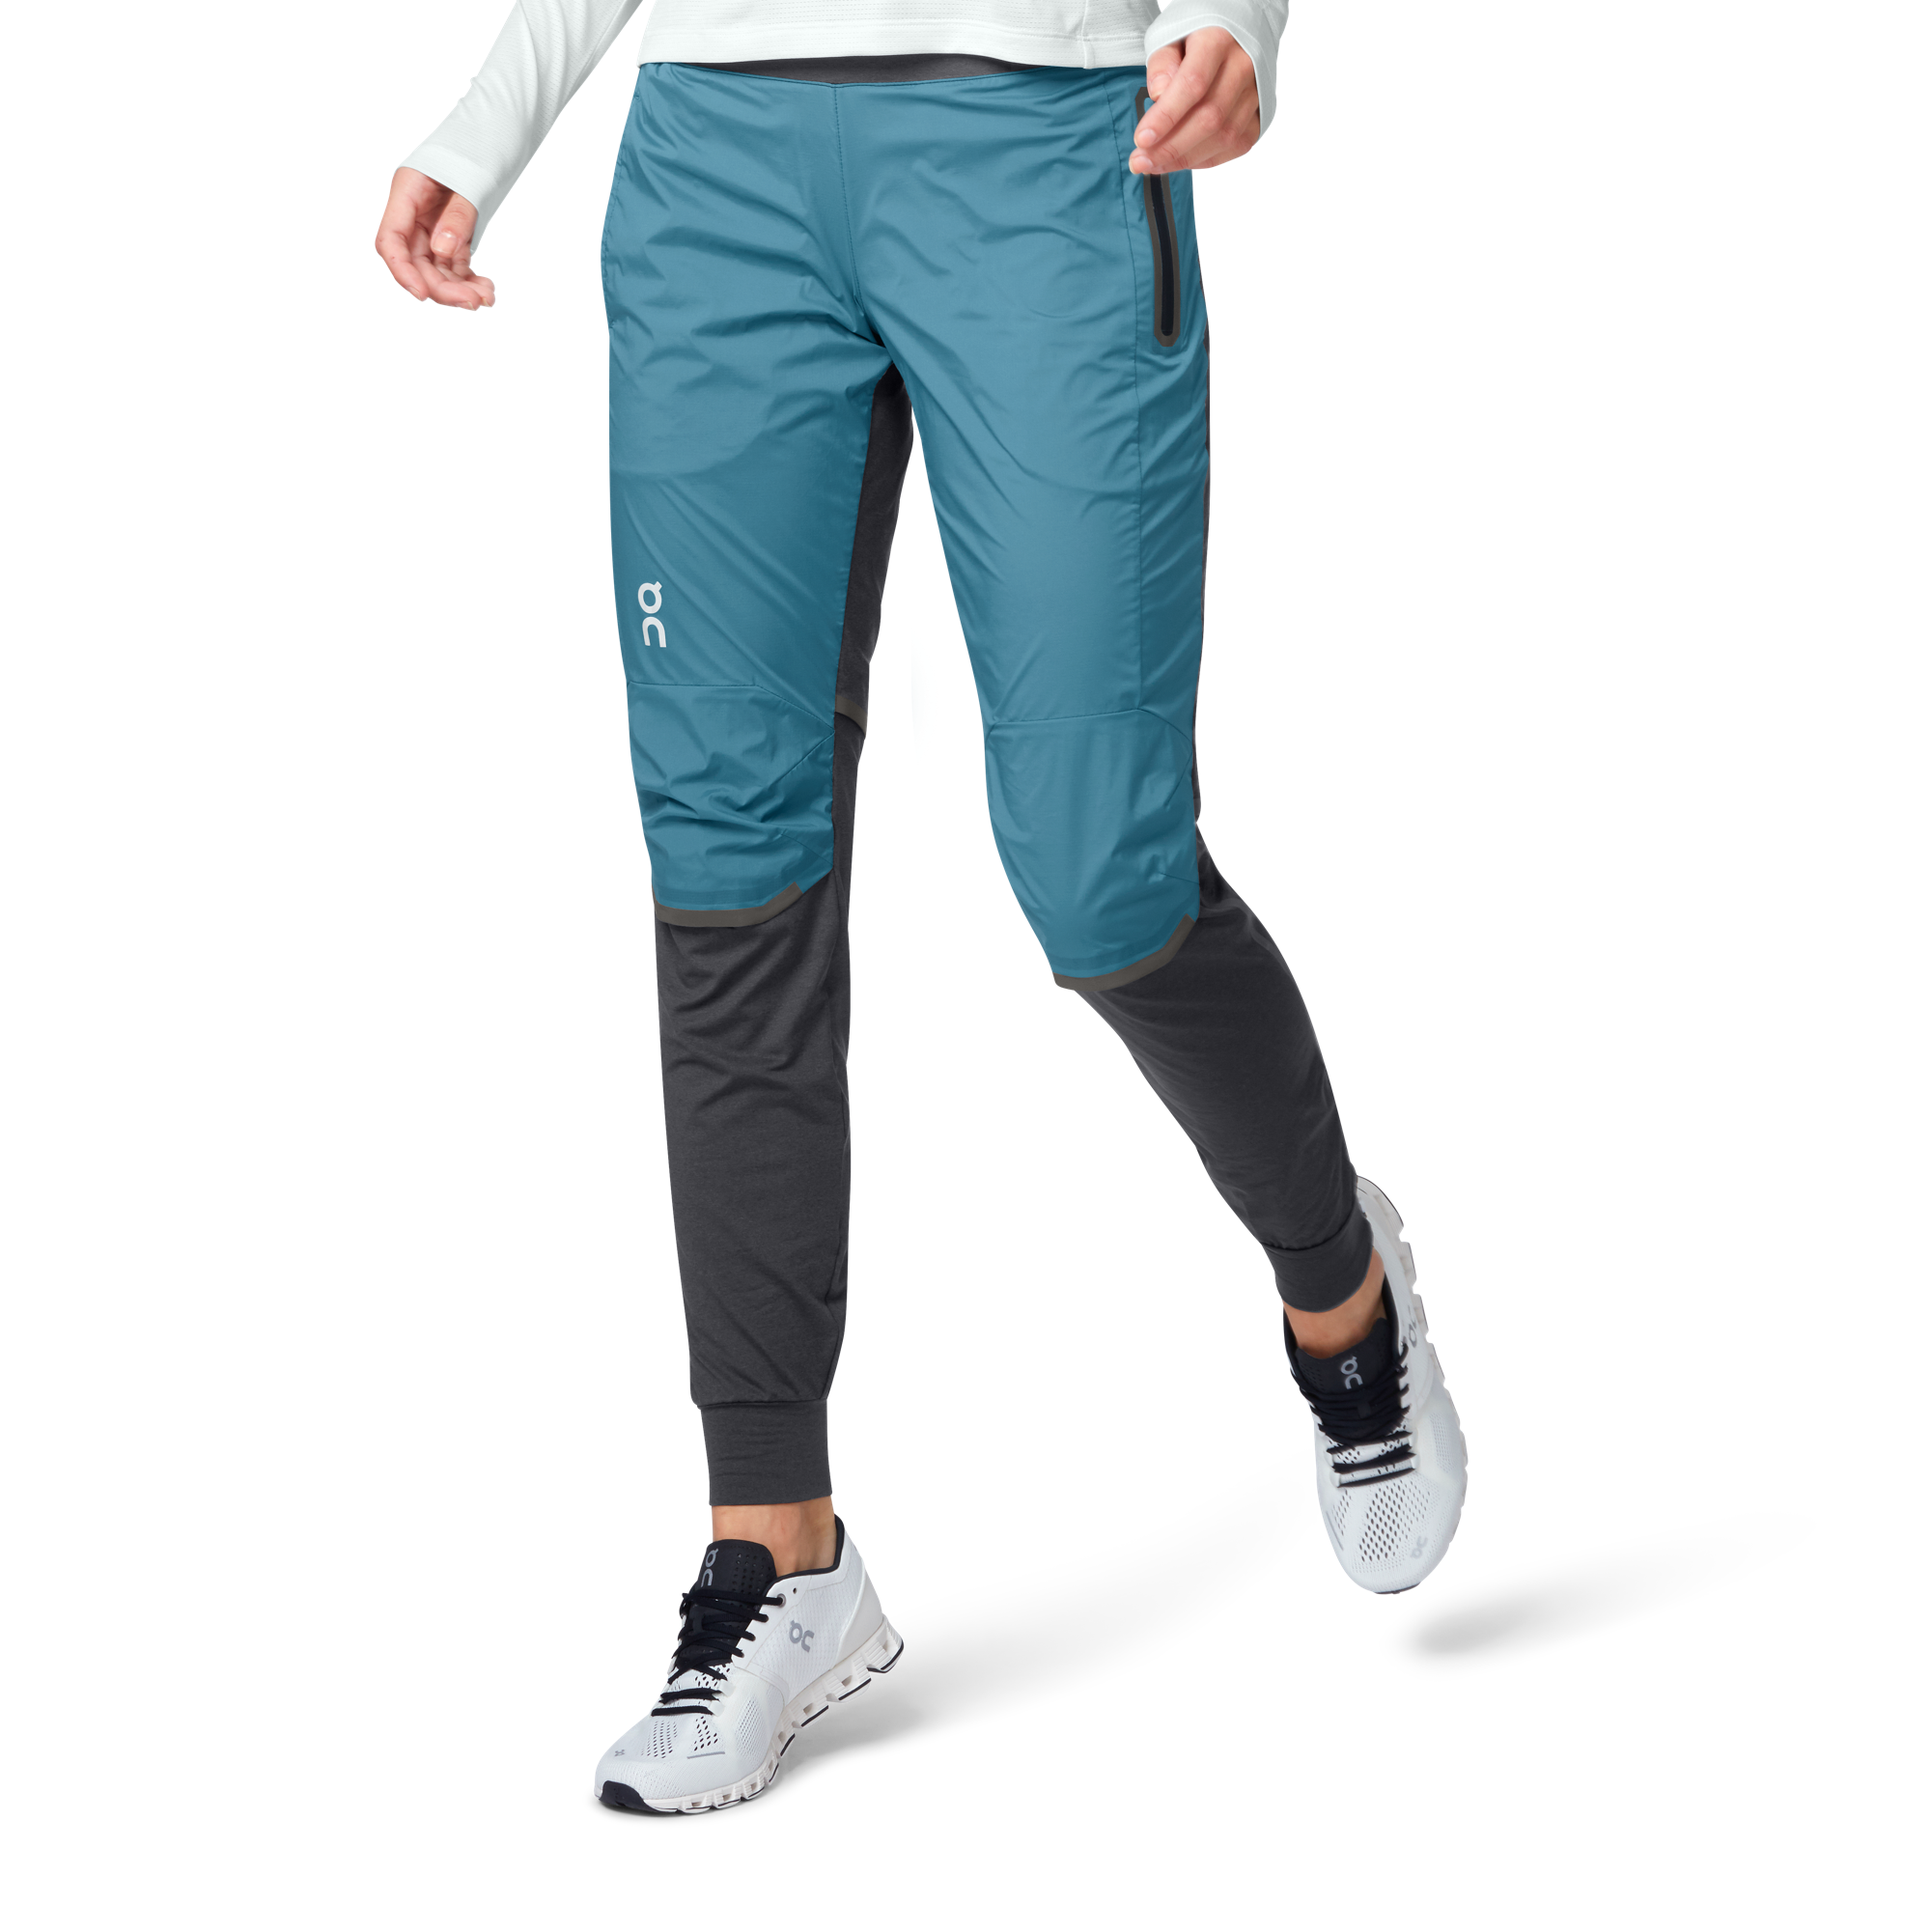 Running Pants - With Pockets